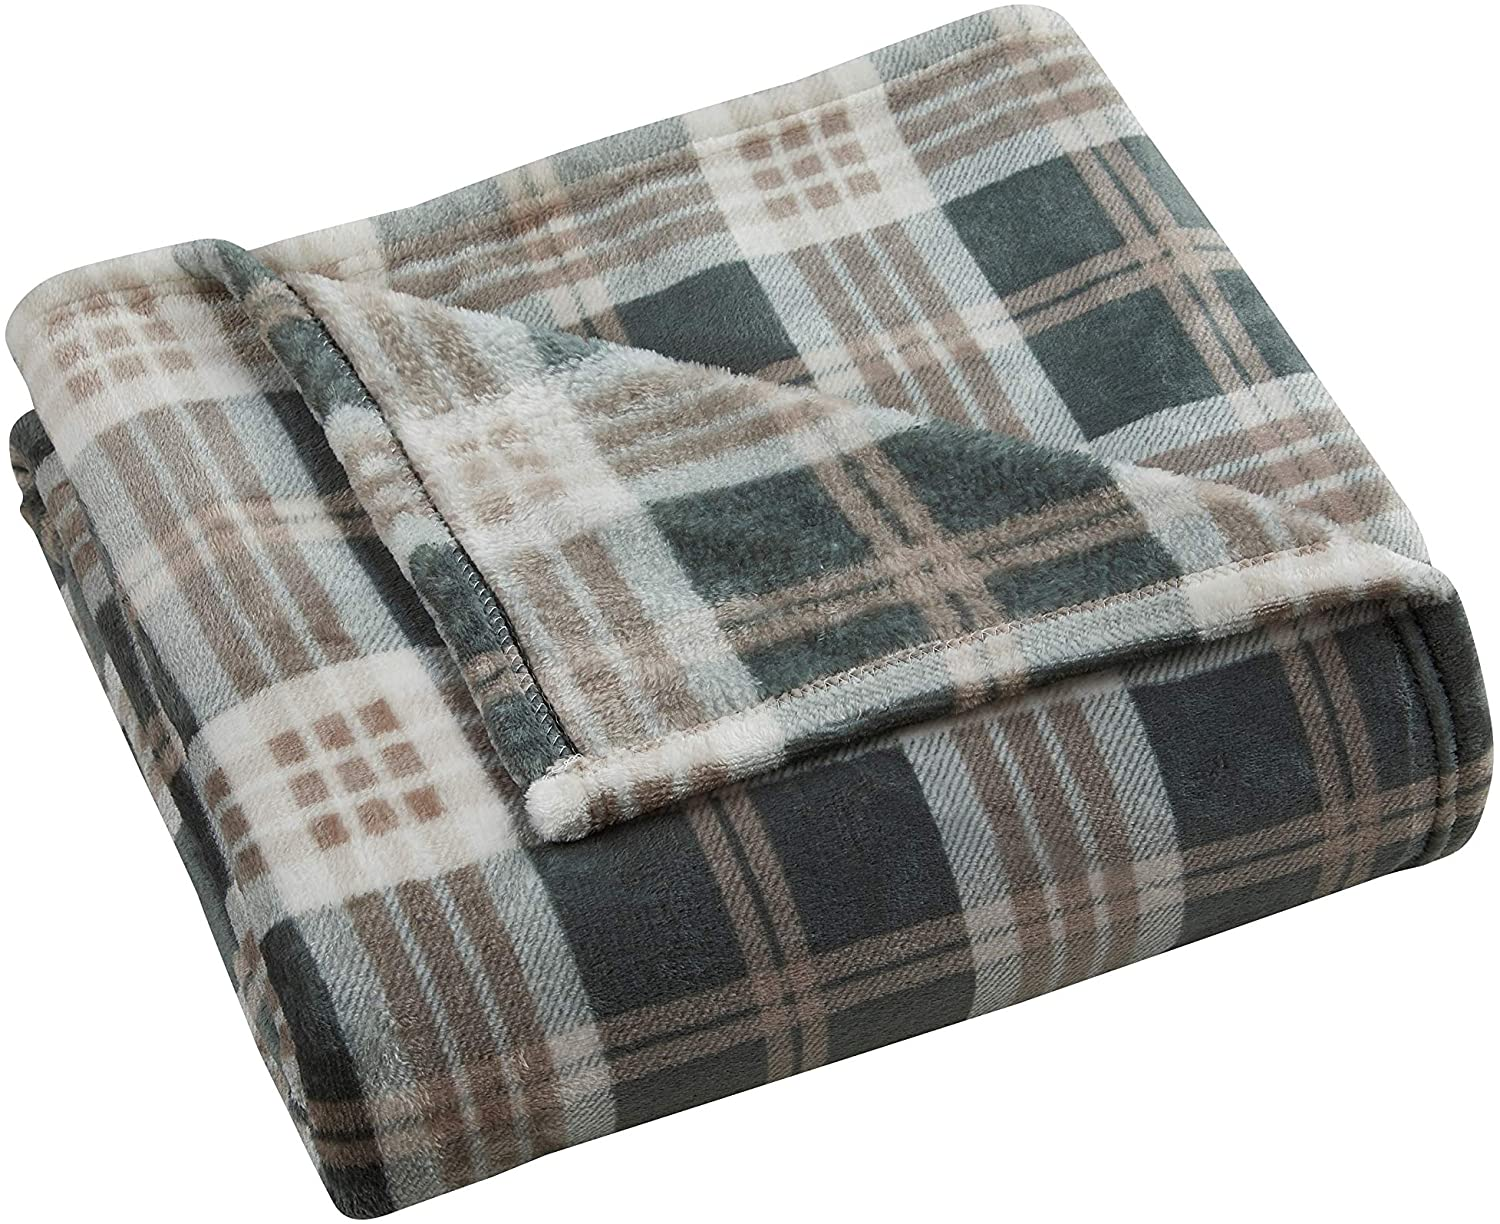 UKN Green Taupe Plaid 50 X 60 Inches Throw Blanket Casual Traditional Microfiber